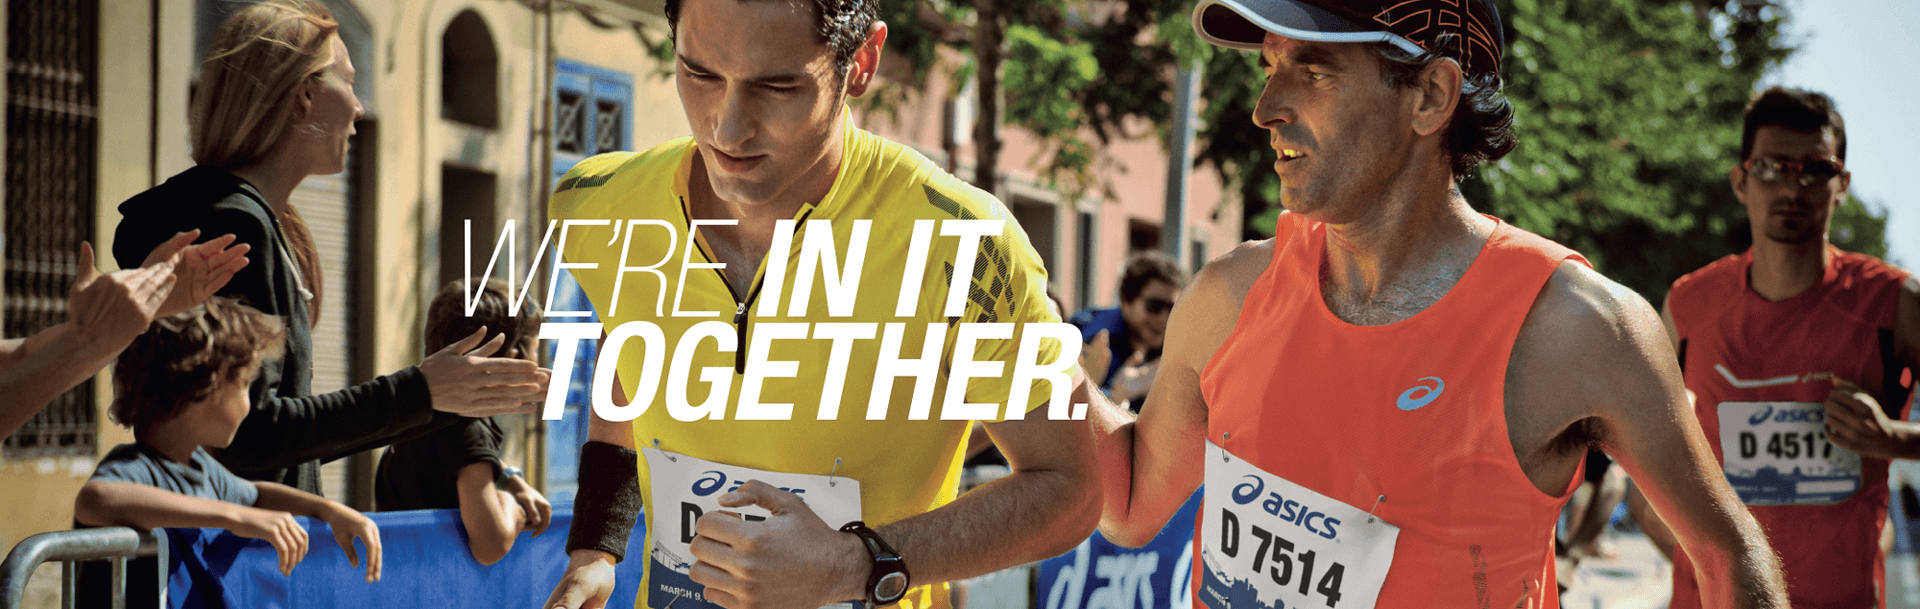 ASICS banner featuring two male runners